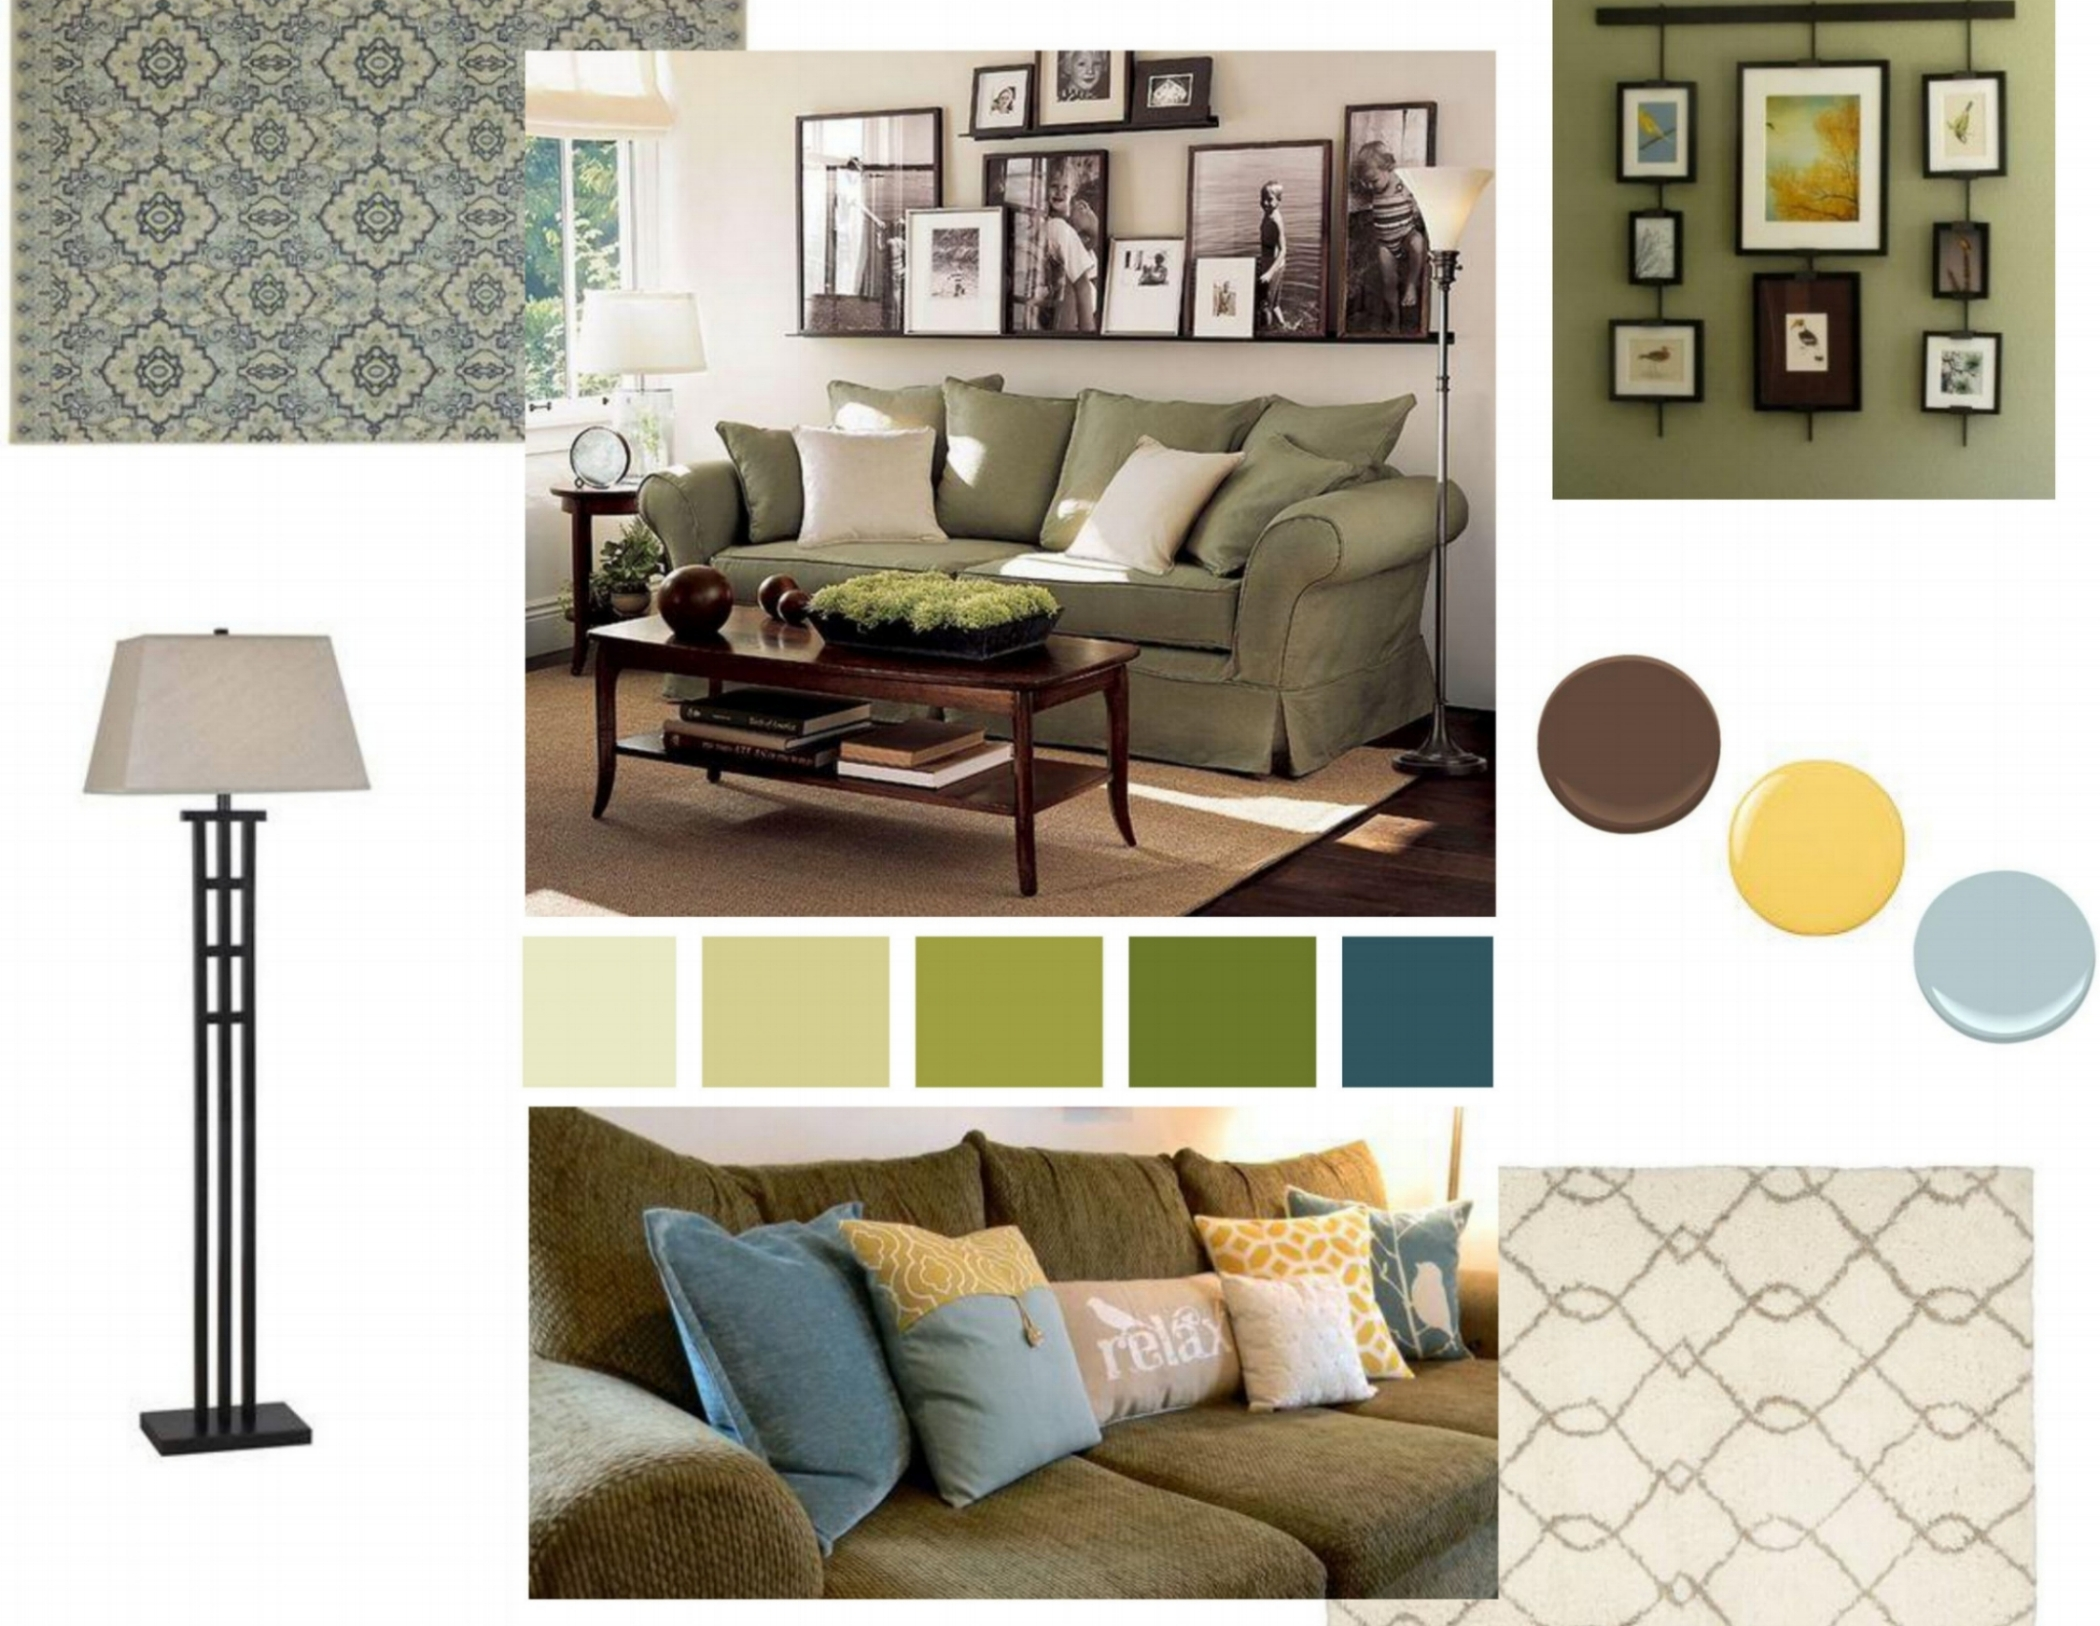 Cozy transitional living room mood board